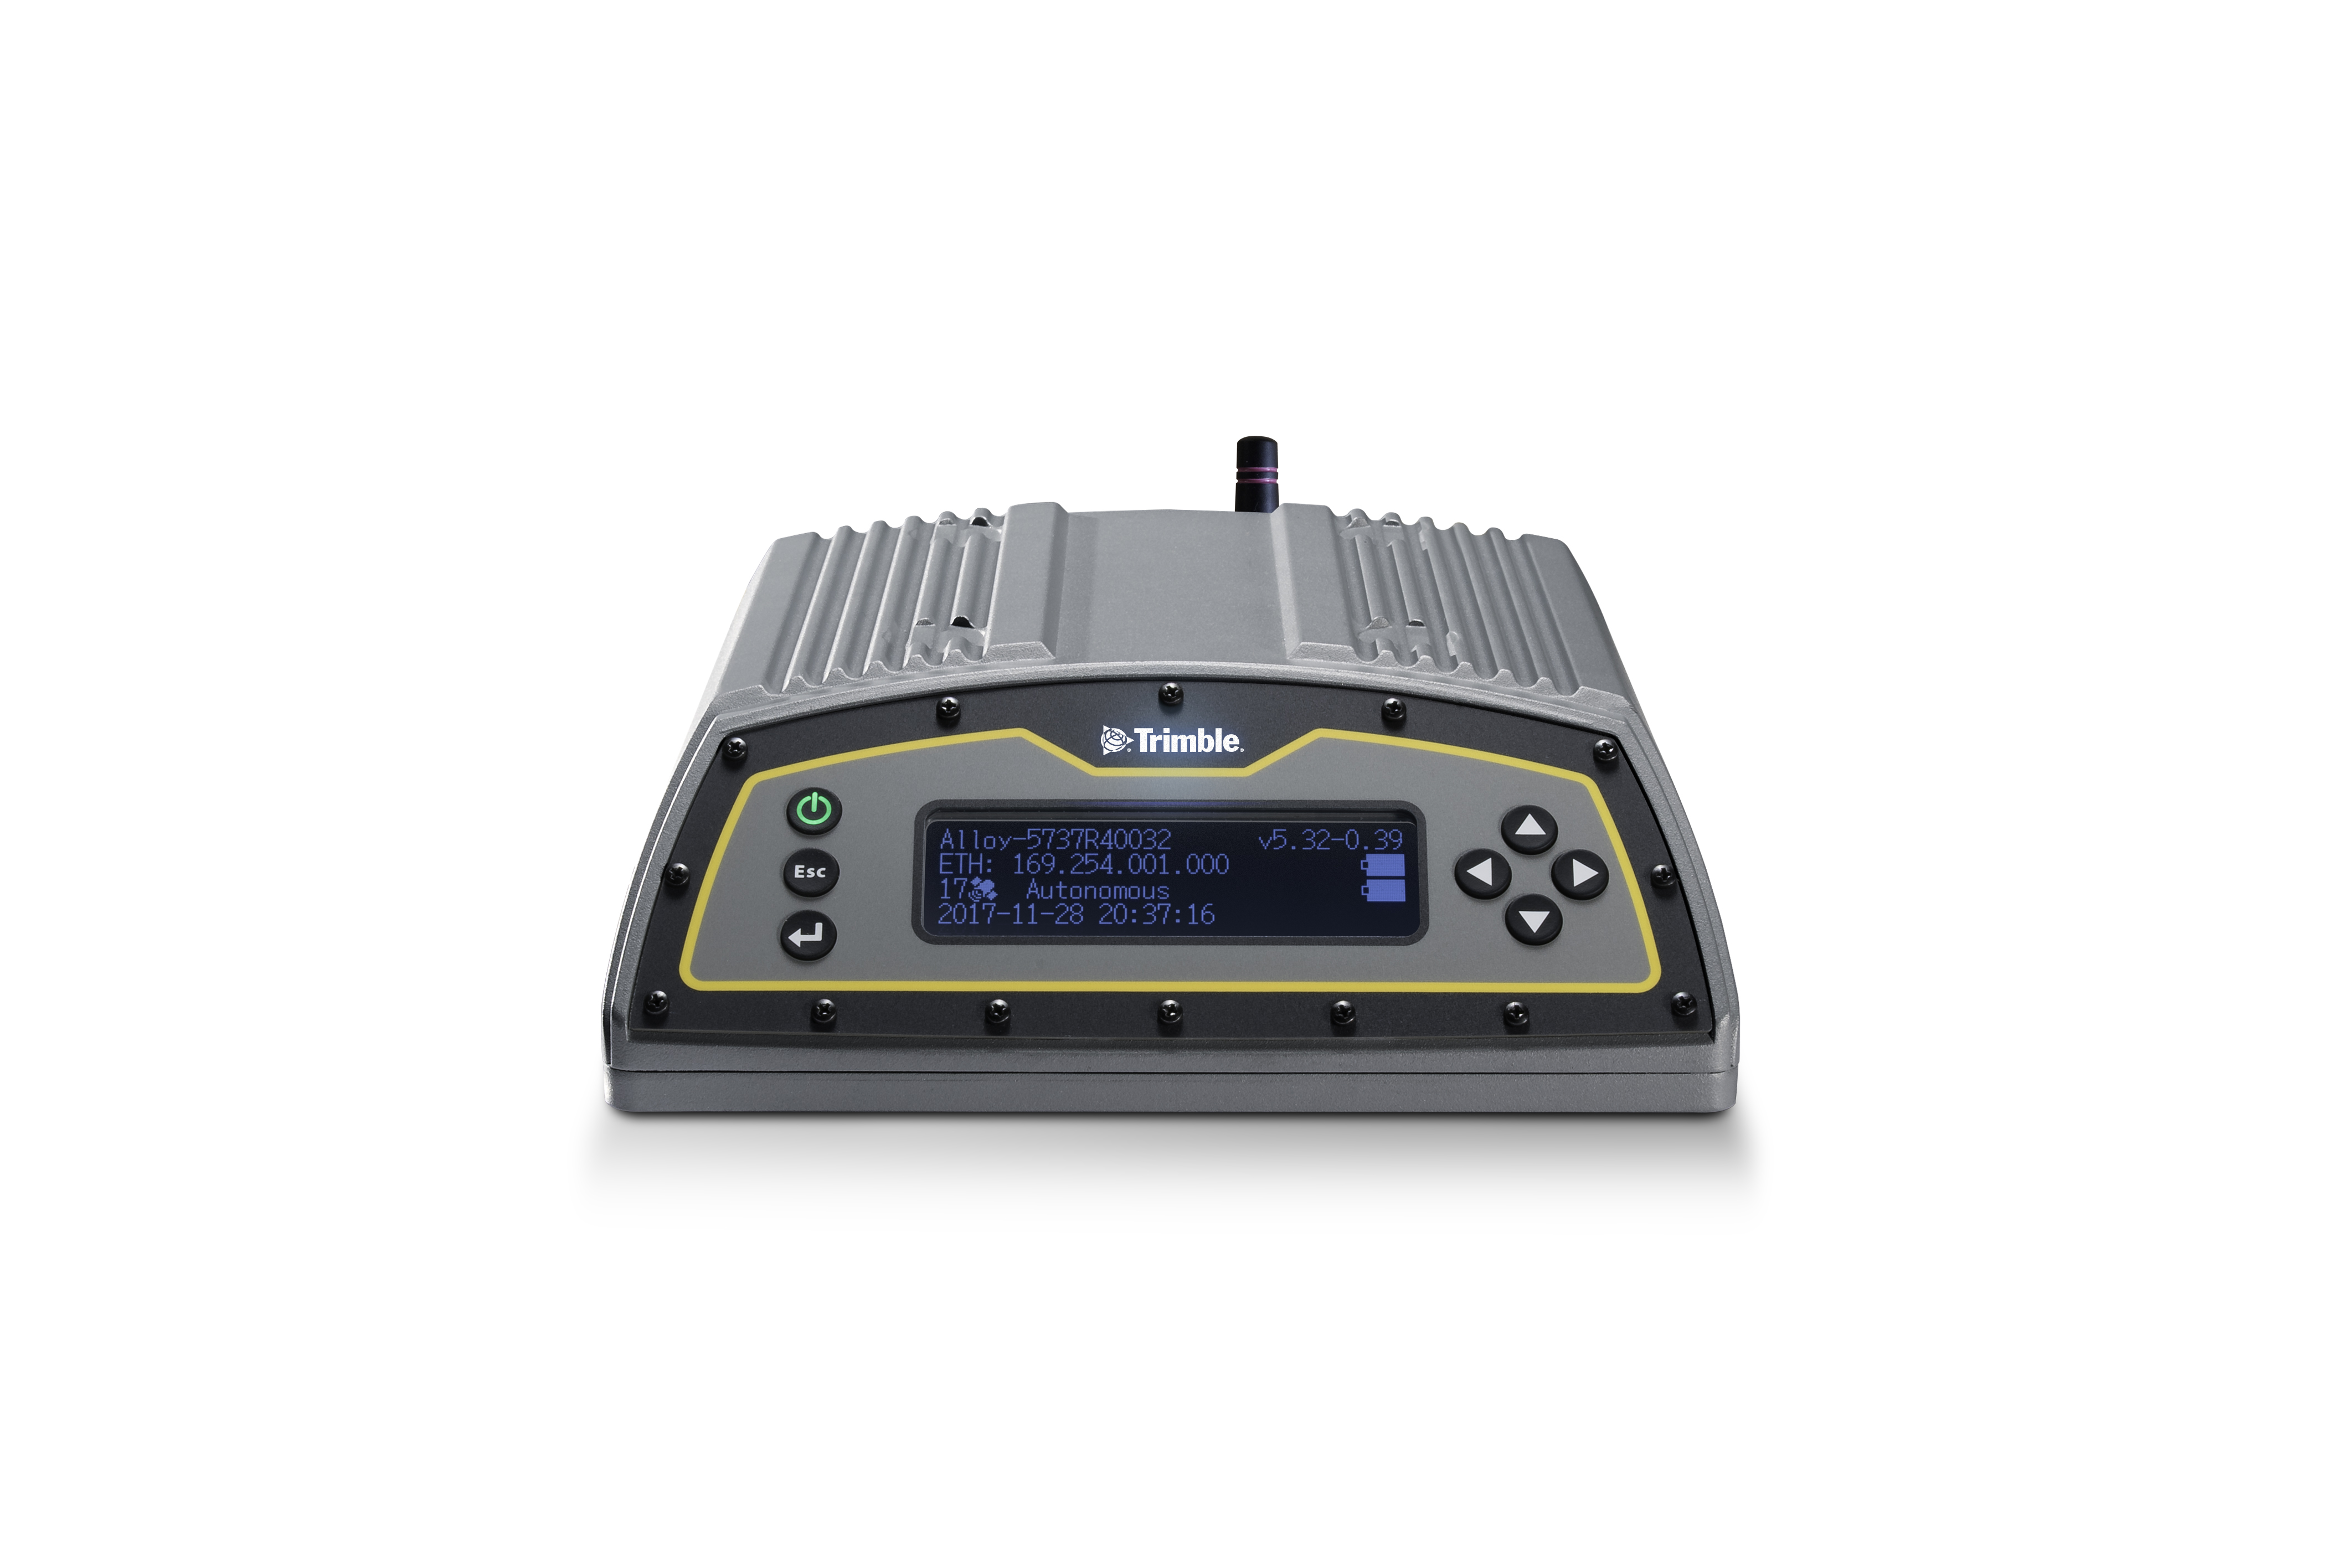 Trimble-Allow-GNSS-Reference-Receiver